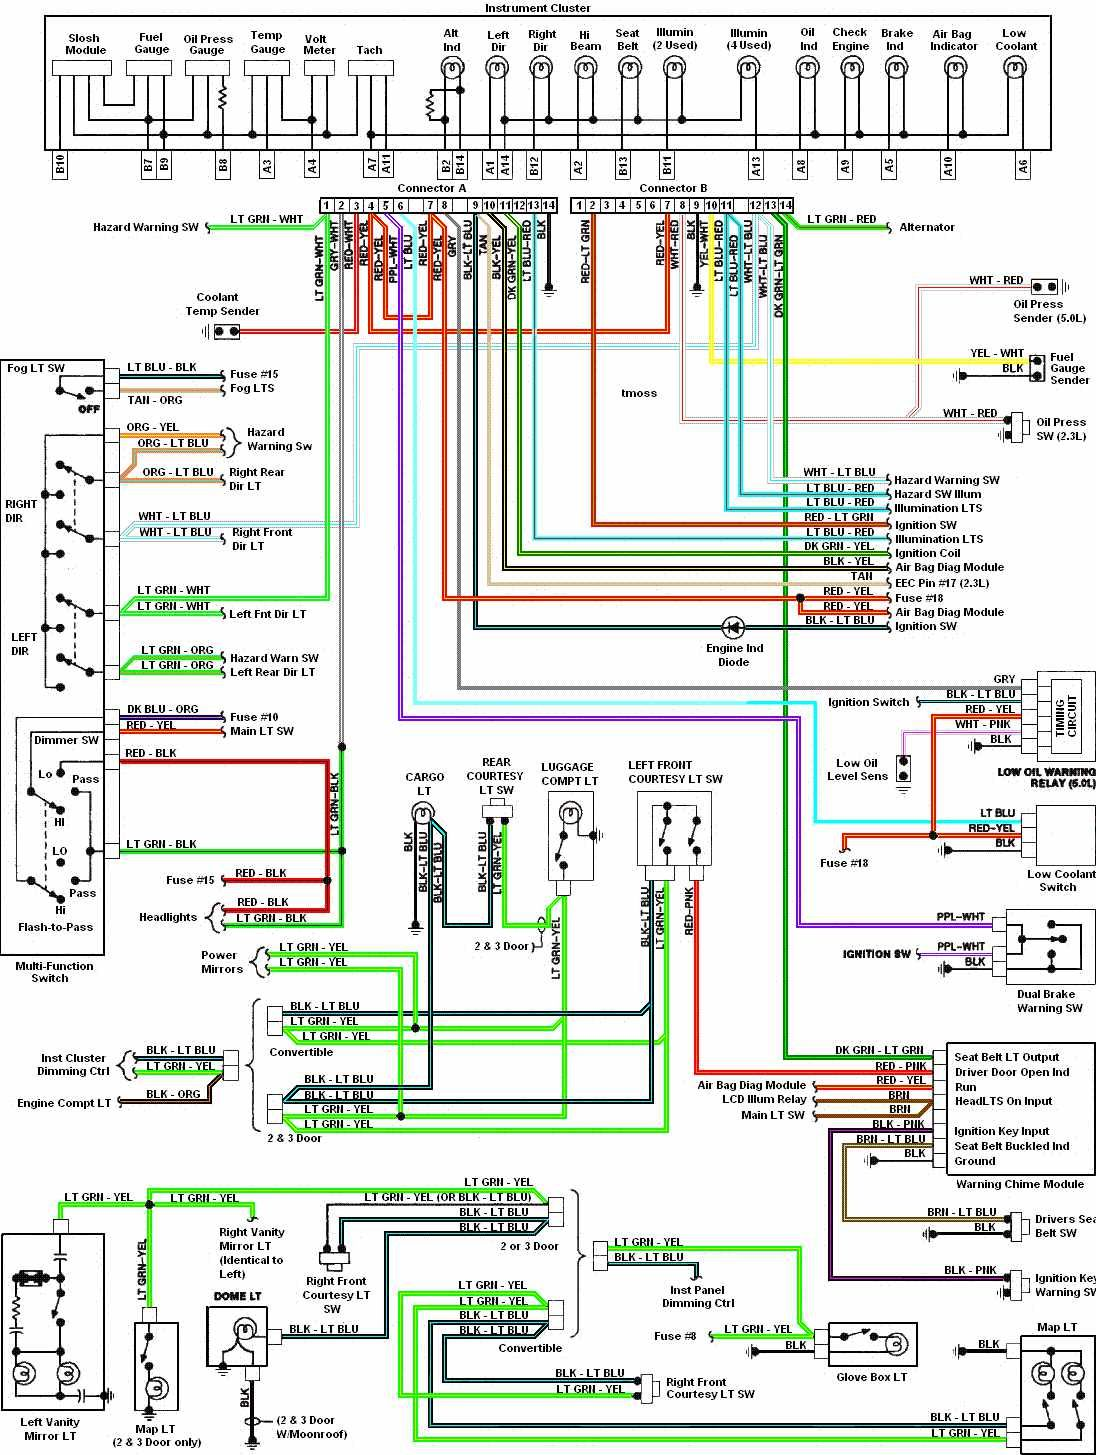 Phenomenal 1969 Mustang Dash Wiring Diagram Wiring Diagram Wiring Digital Resources Remcakbiperorg